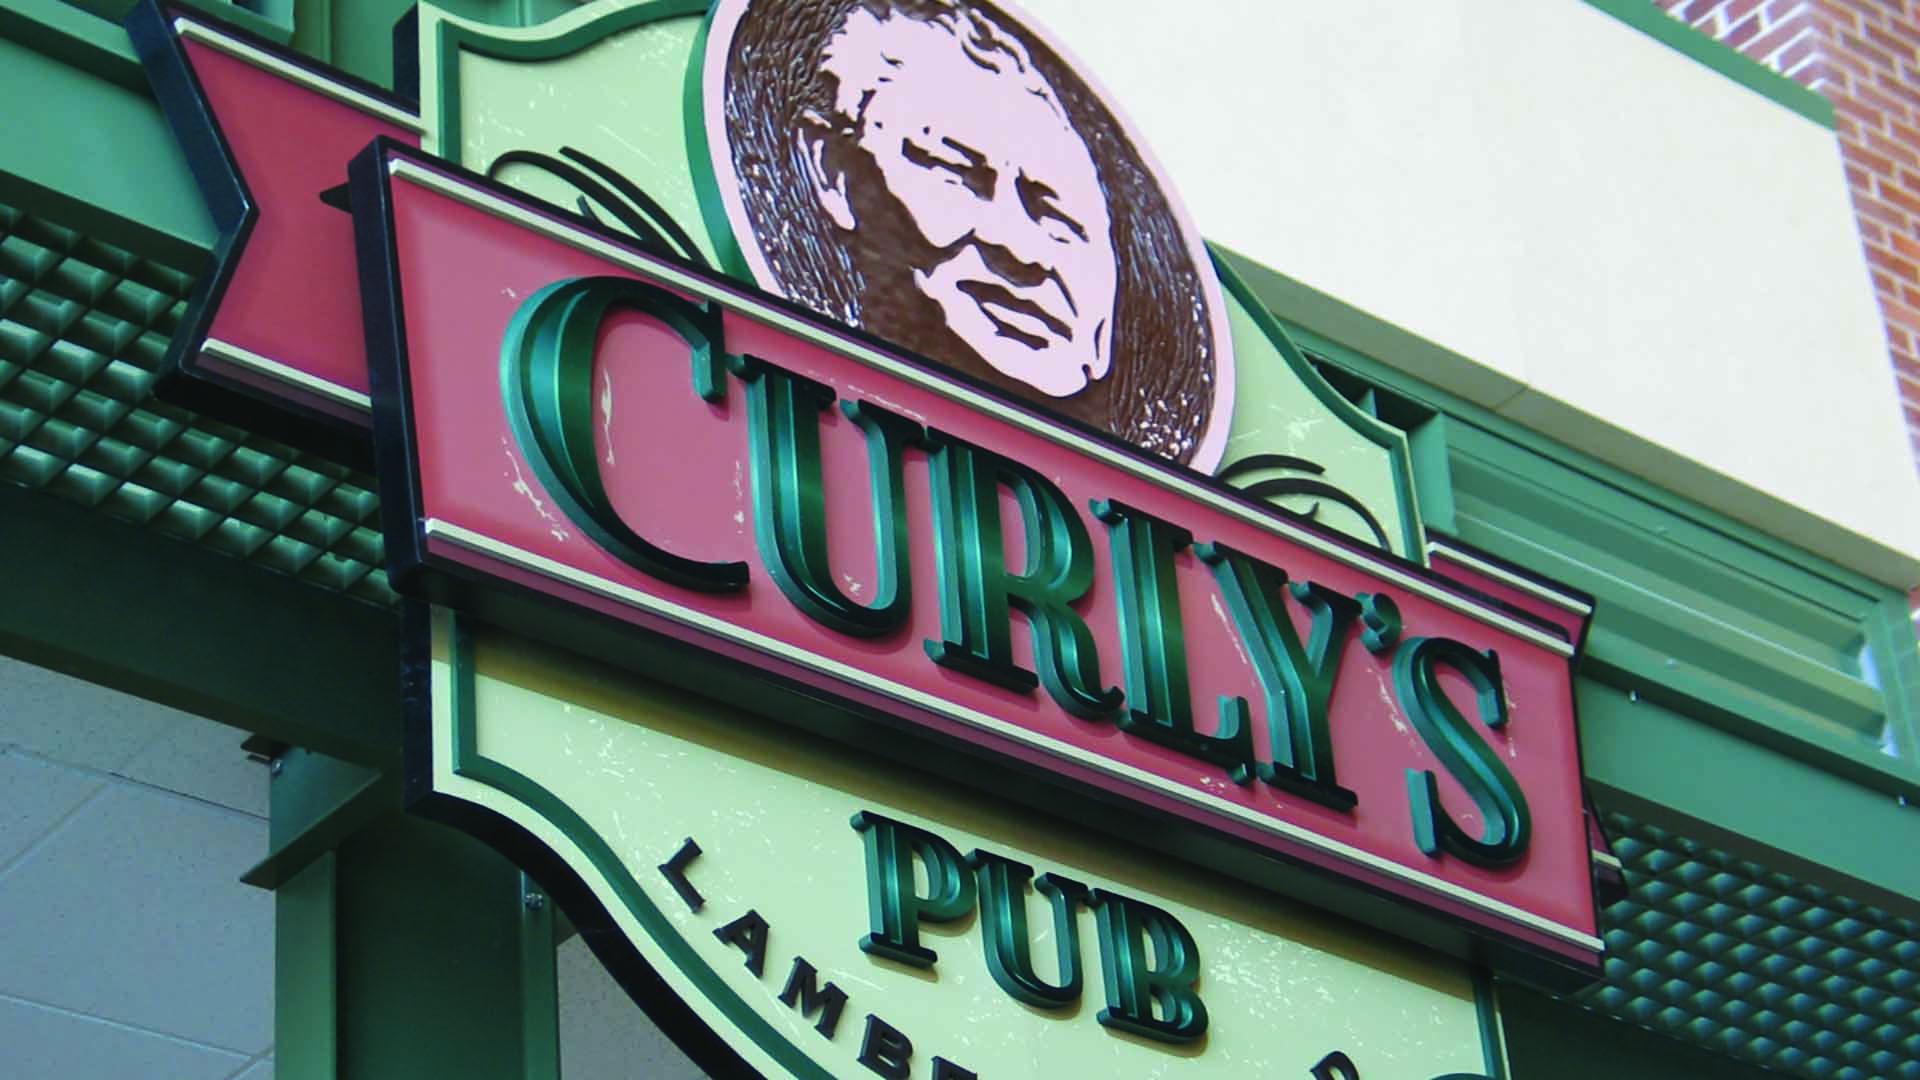 Curly's Pub dimensional sign.